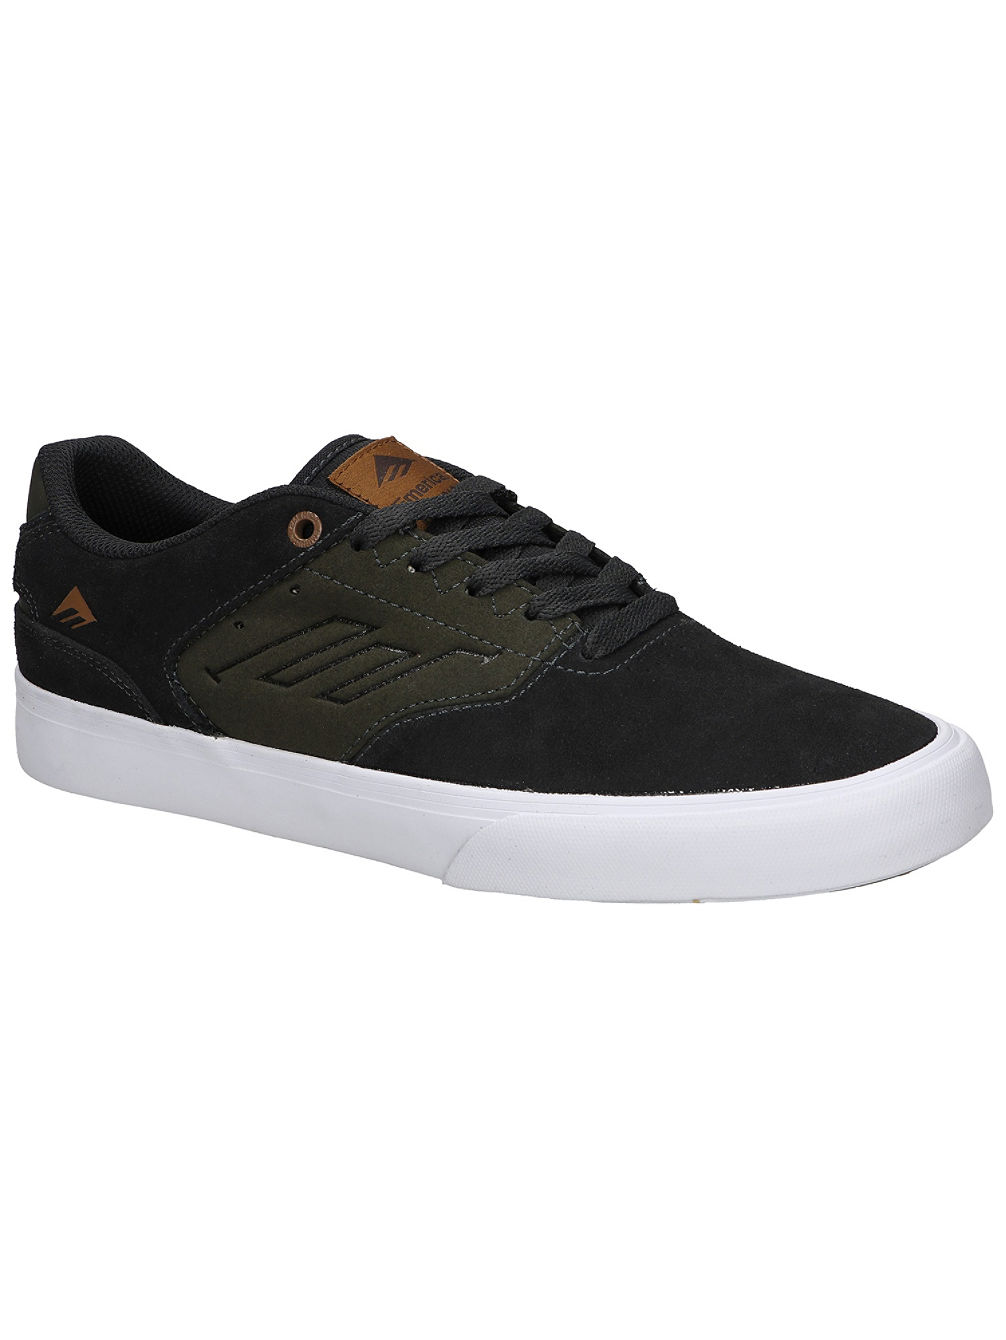 The Reynolds Low Vulc Chaussures de Skate